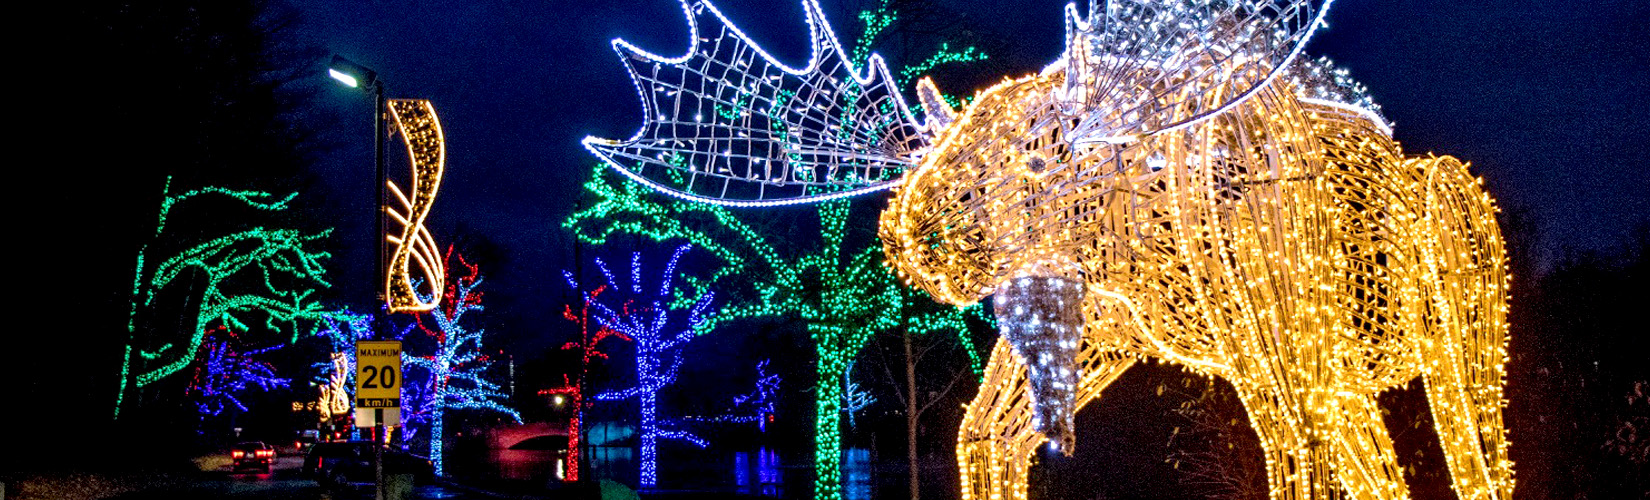 Christmas Lights in Ontario: Your Ever-Growing List of Holiday Cheer :: I've Been Bit! Travel Blog